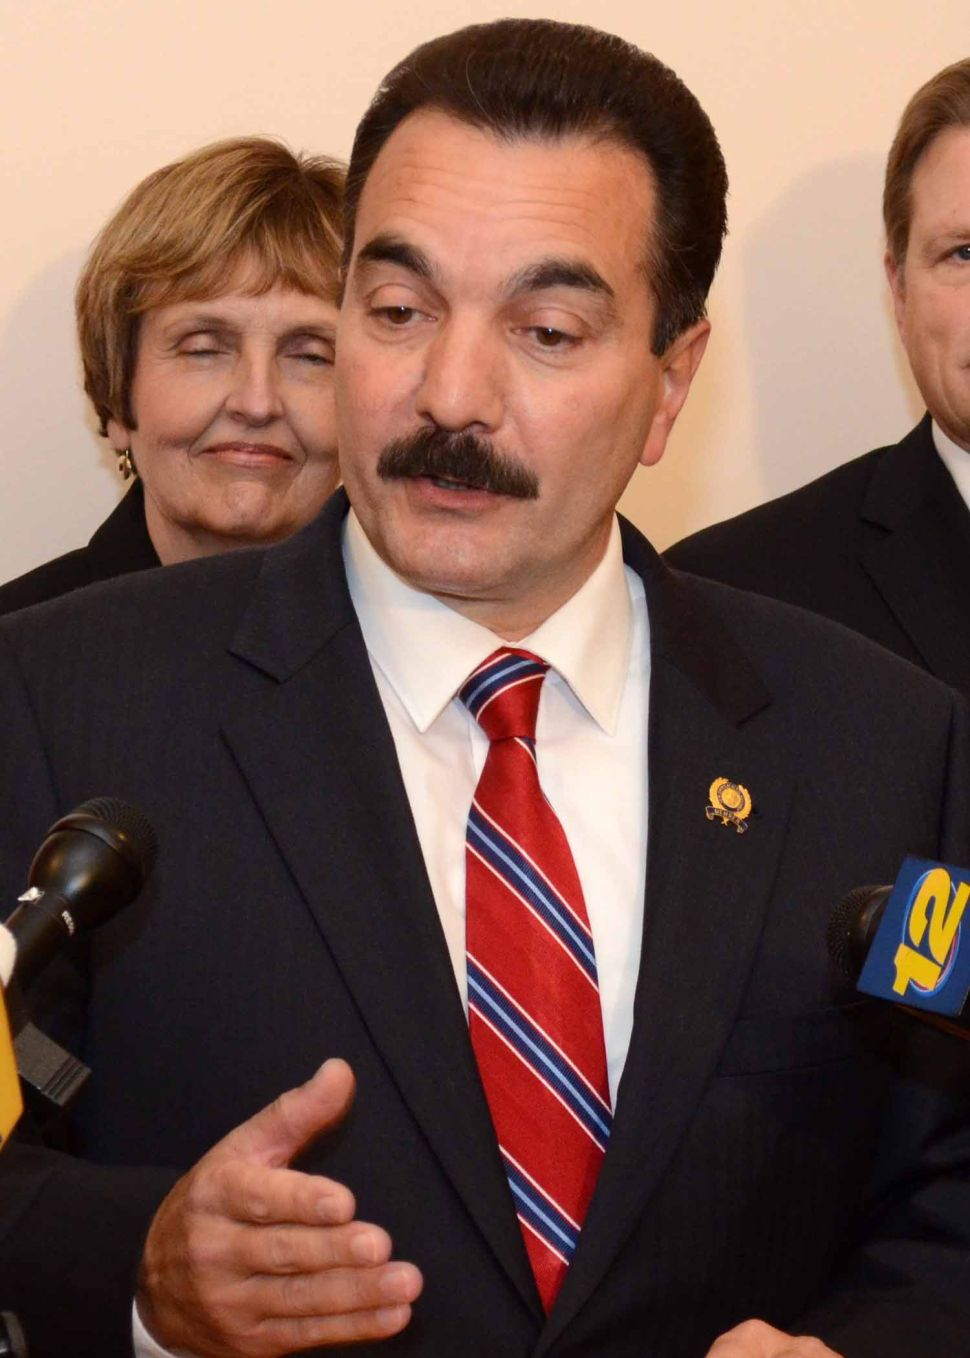 Prieto responds to Obama's immigration order: 'This is common sense'